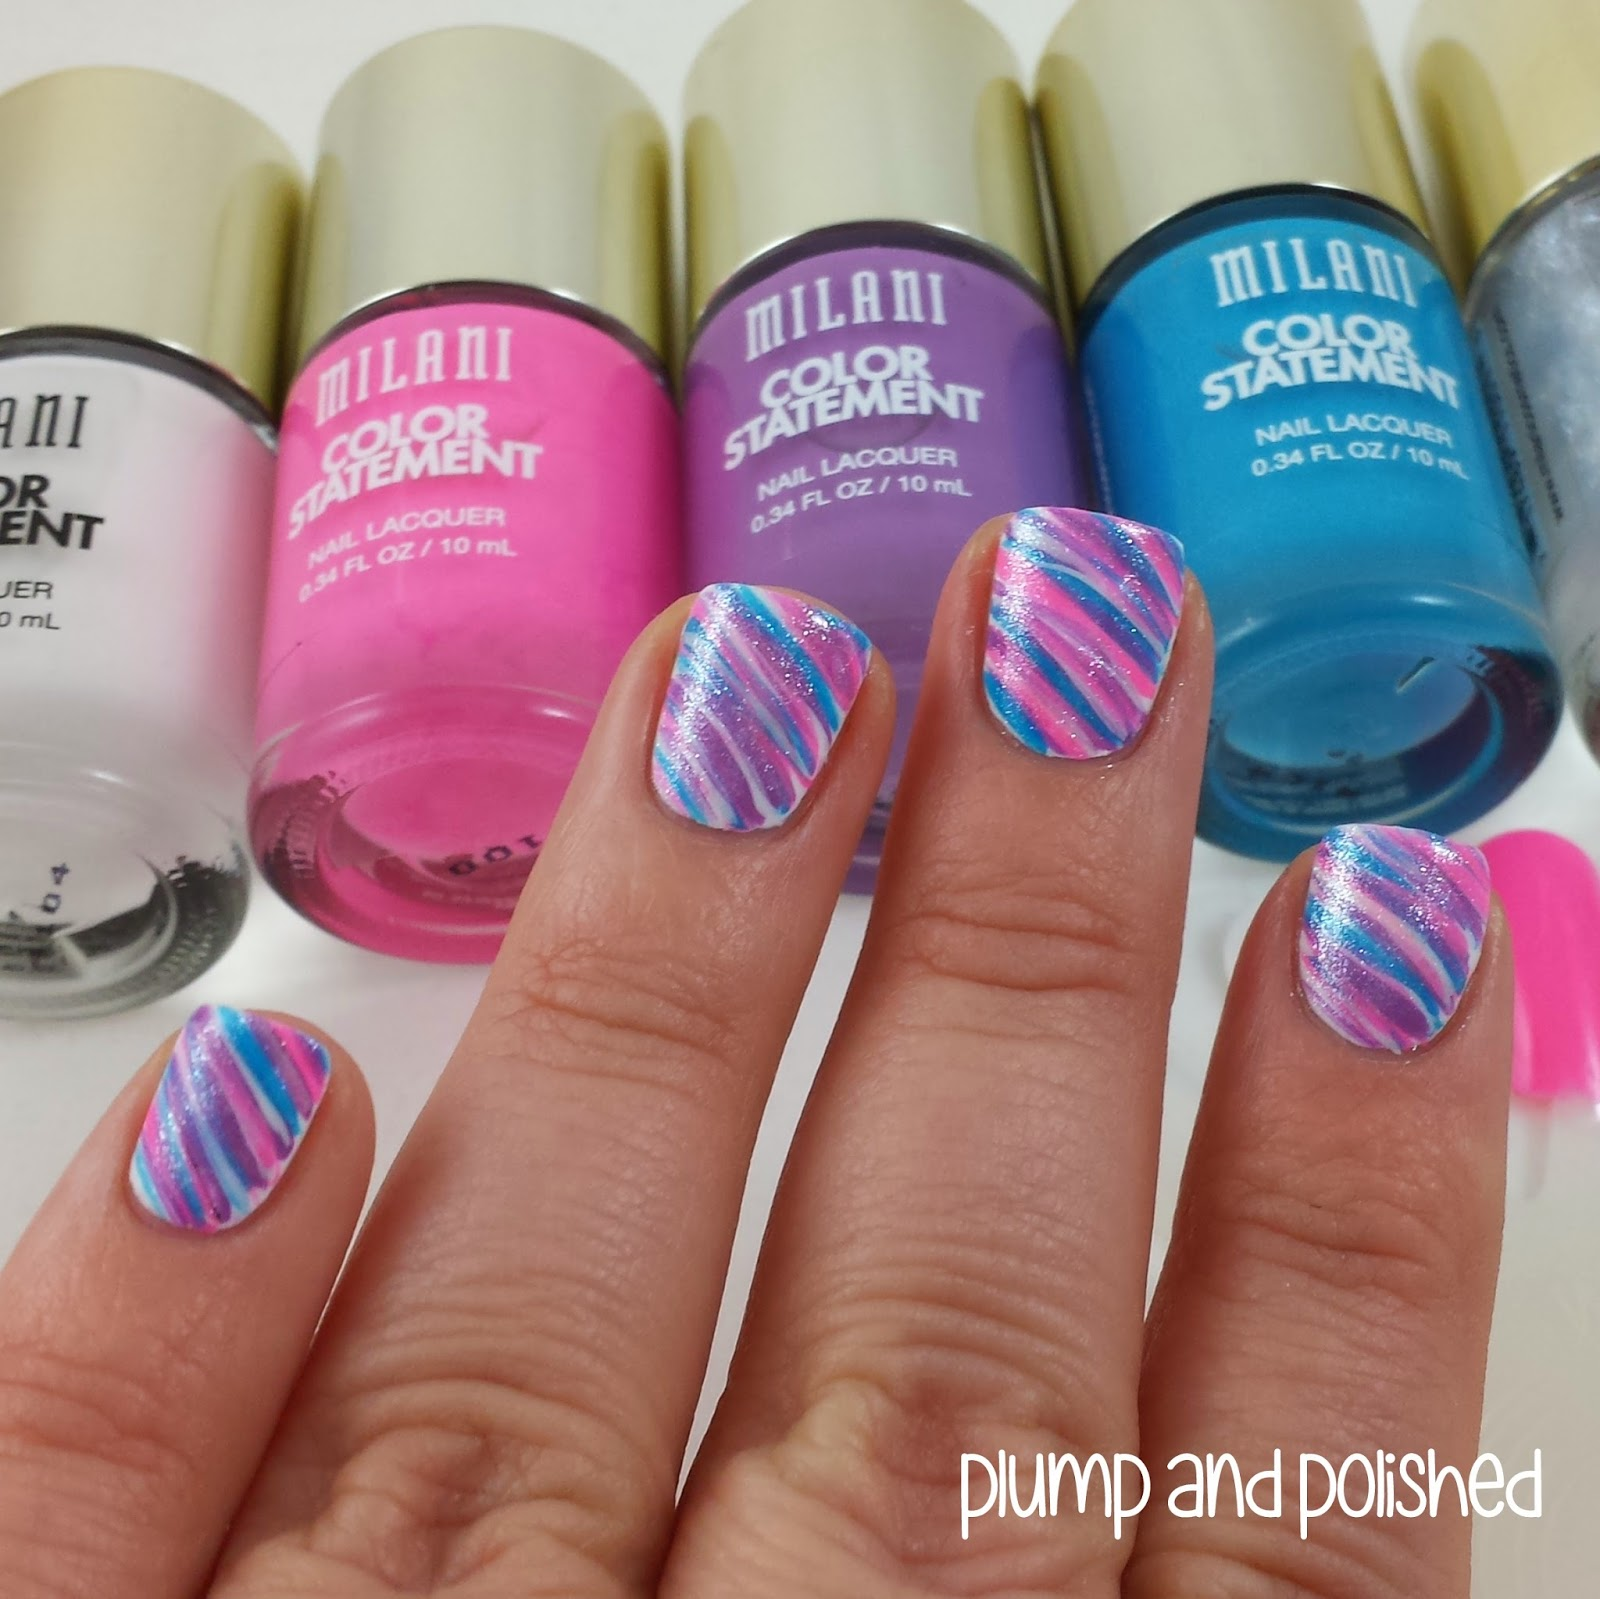 Cotton Candy Nail Color: Plump And Polished: Milani Color Statement